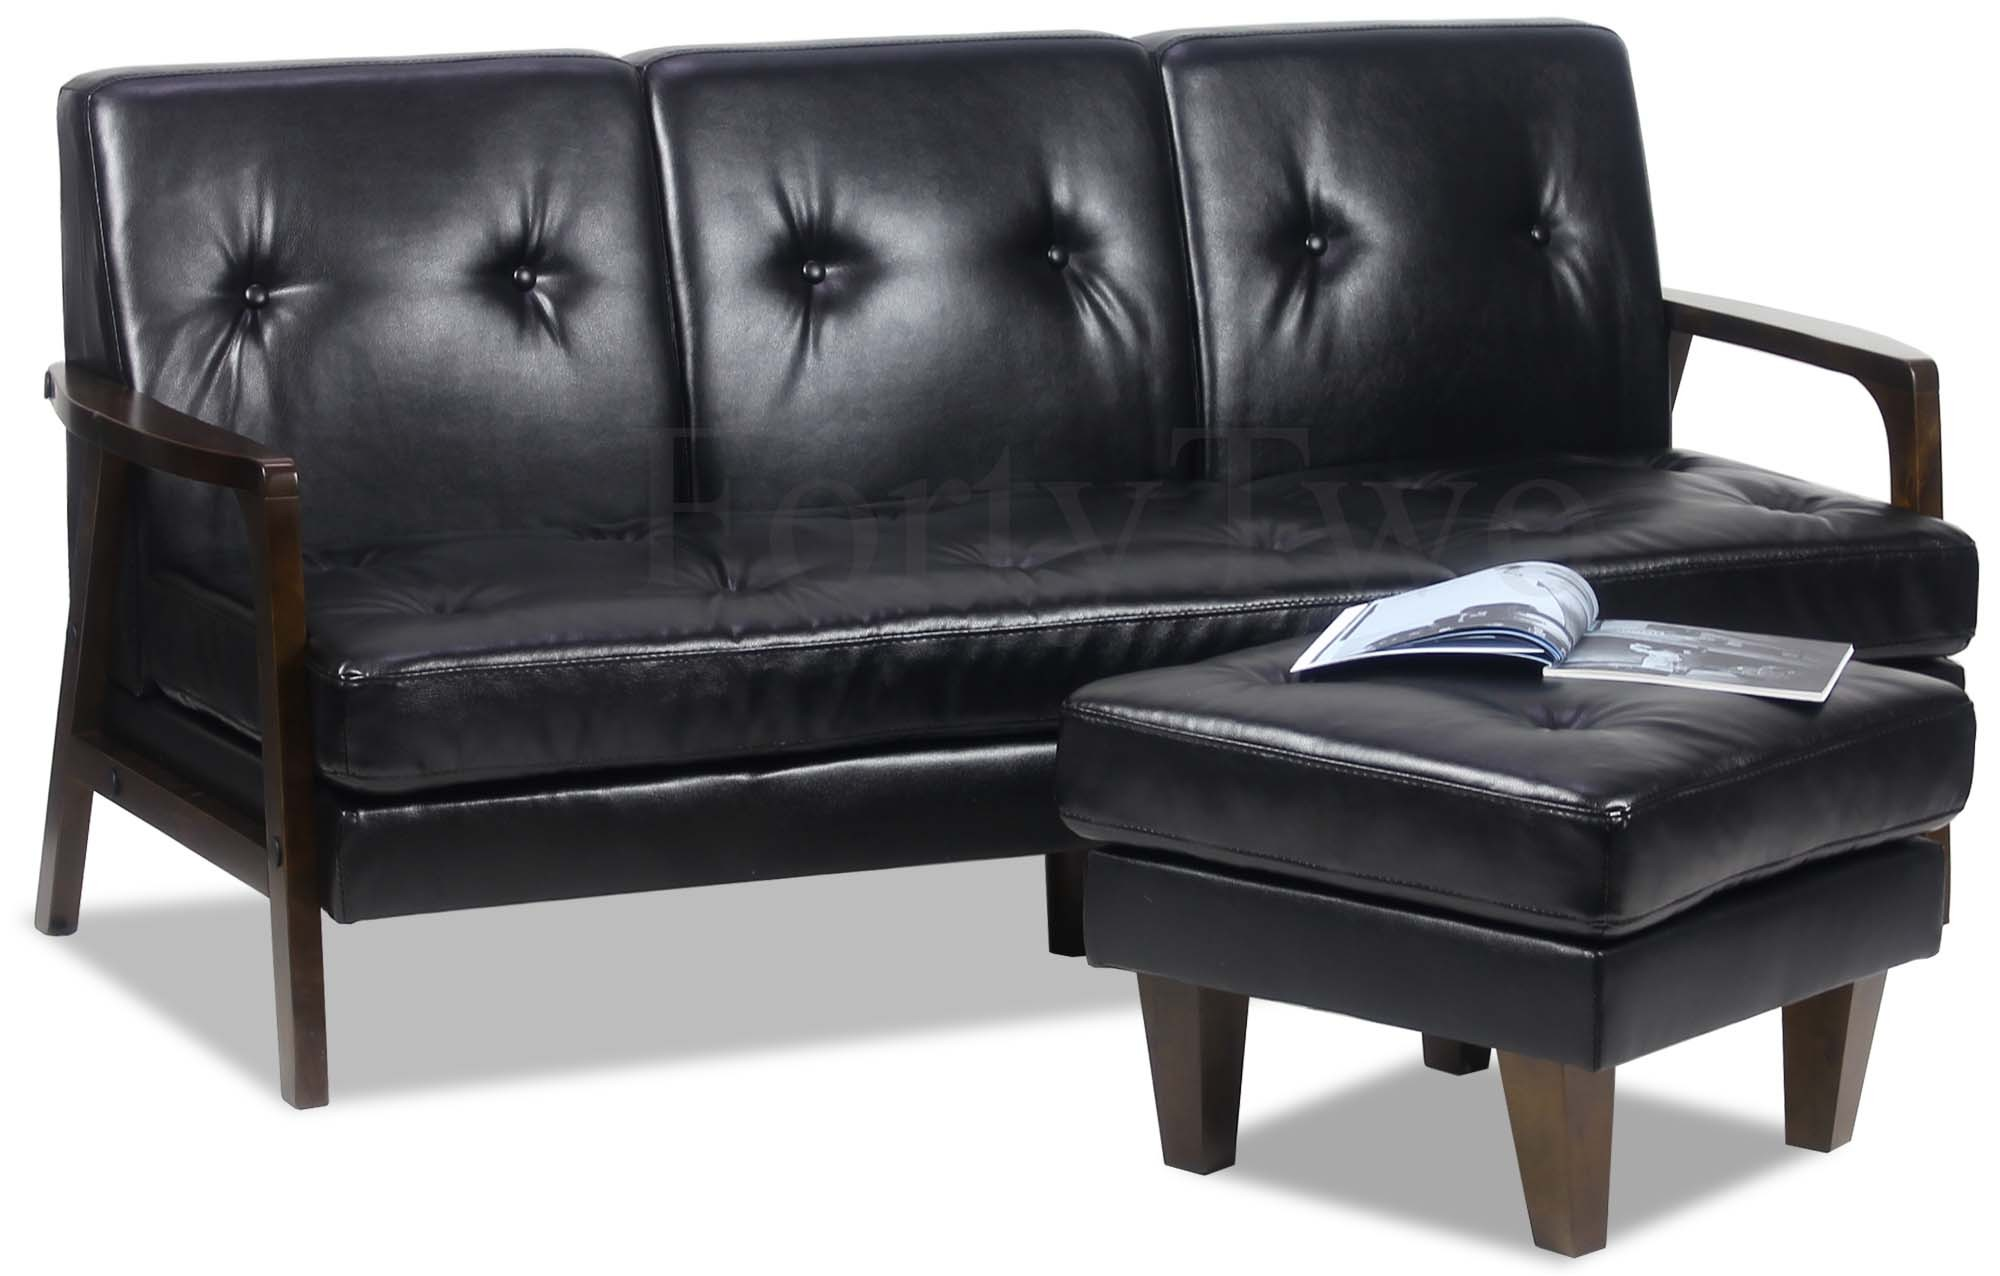 4 foot wide sofa bed family sofas long home the honoroak